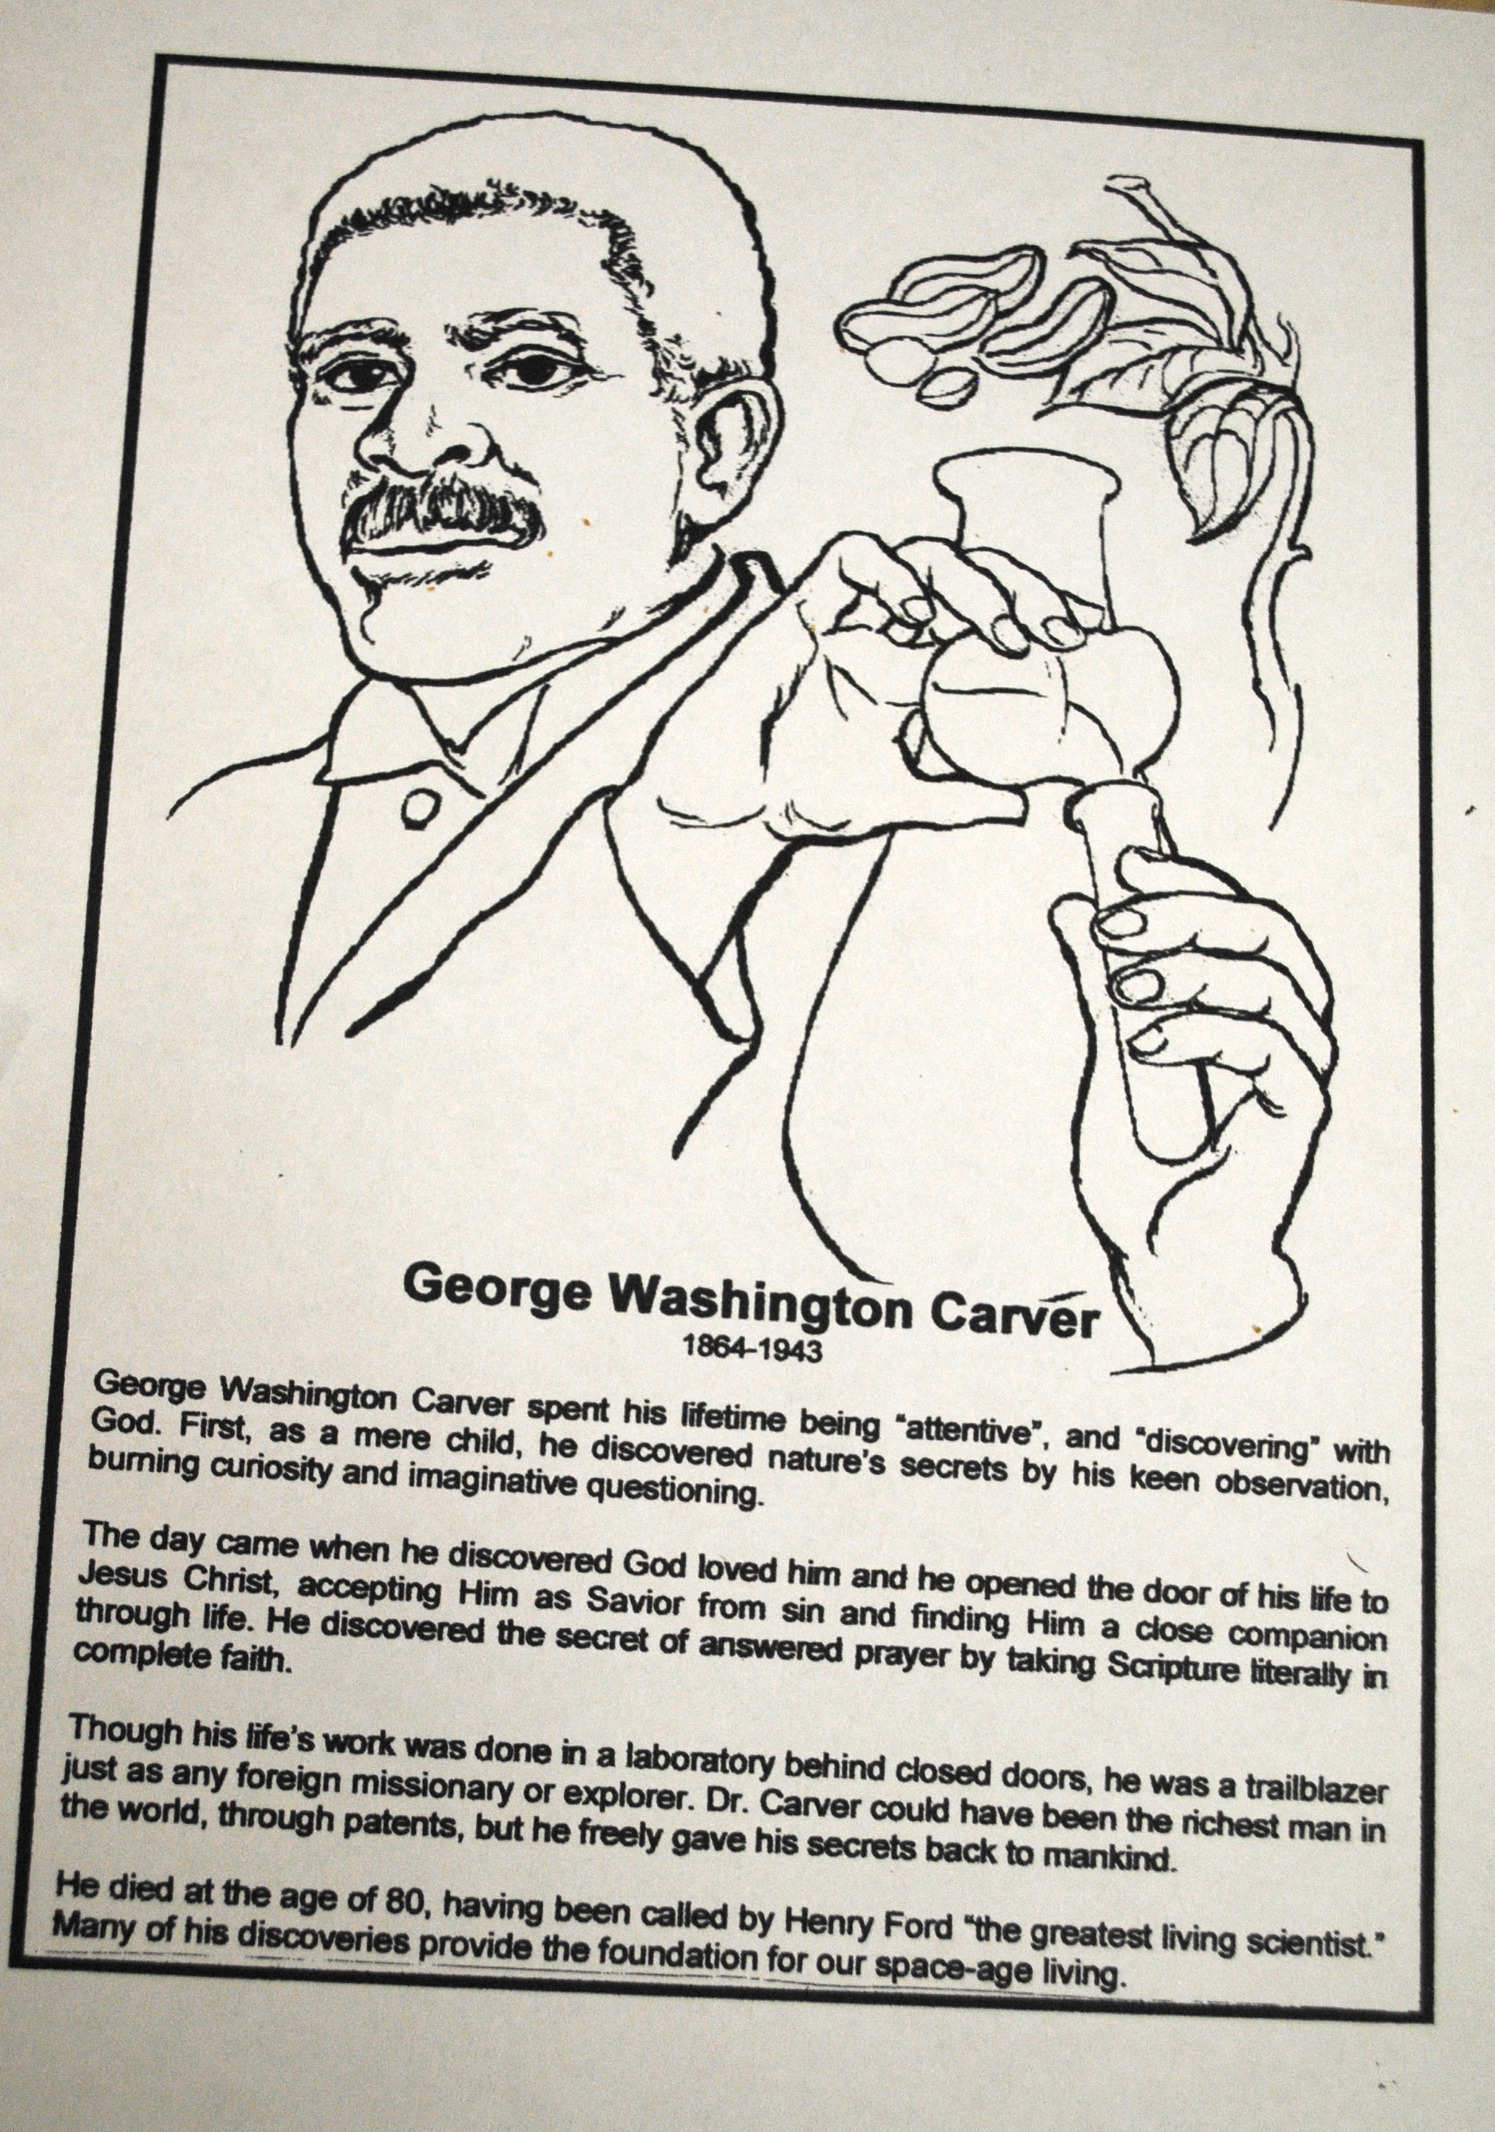 one page essay on george washington carver essay george washington carver coloring page sunshine on my shoulders peanuts potato heads teach attentiveness